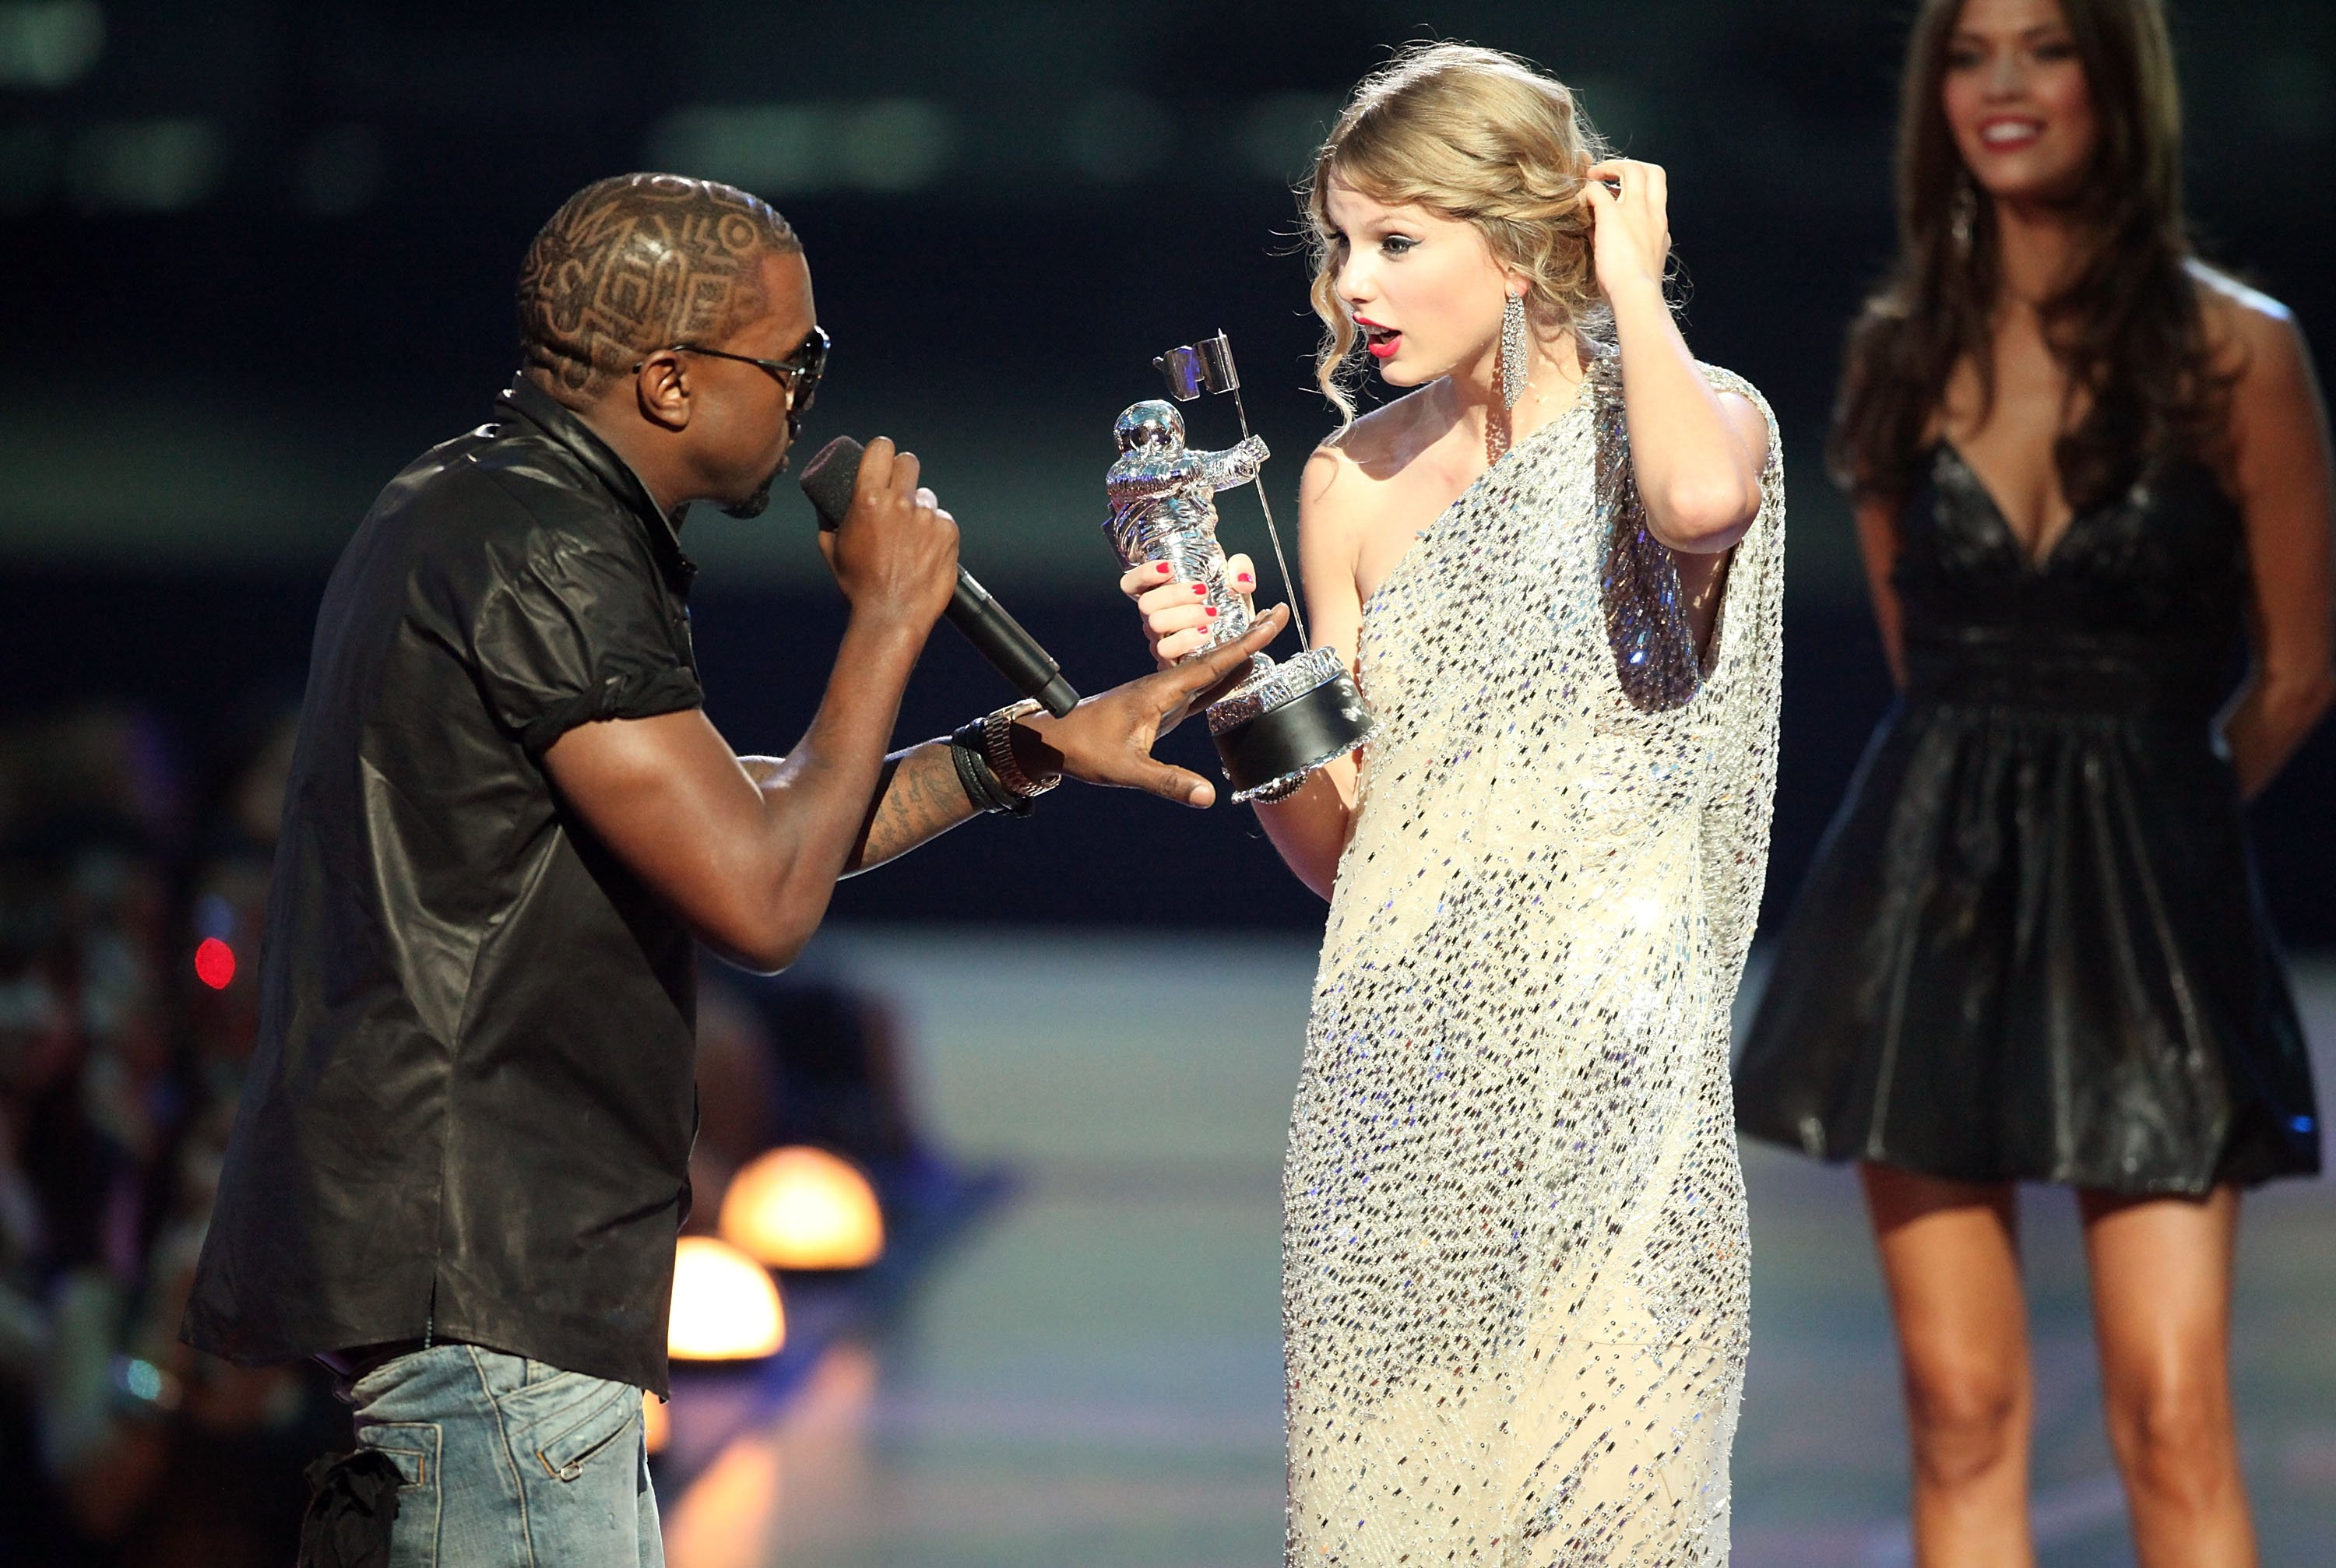 """Kanye West (L) jumps onstage after Taylor Swift (C) won the """"Best Female Video"""" award during the 2009 MTV Video Music Awards at Radio City Music Hall on September 13, 2009, in New York City.   Source: Getty Images."""